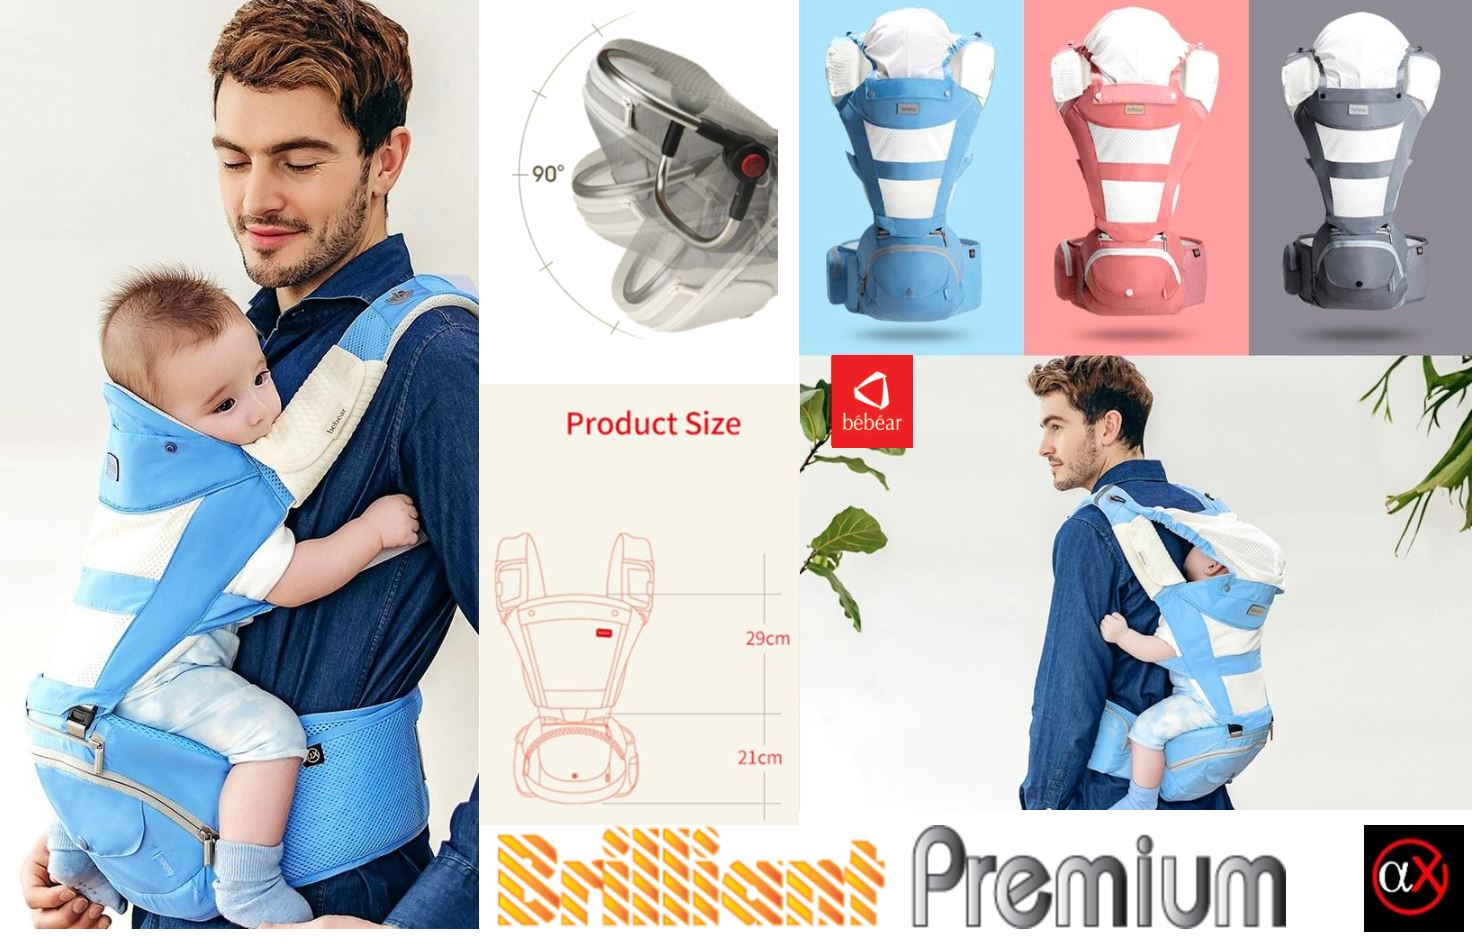 Bebear Foldable Ergonomic Aluminium HipSeat Carrier AX Brilliant Series *ADDITIONAL FREE GIFT for EARLY BIRD SPECIAL!!